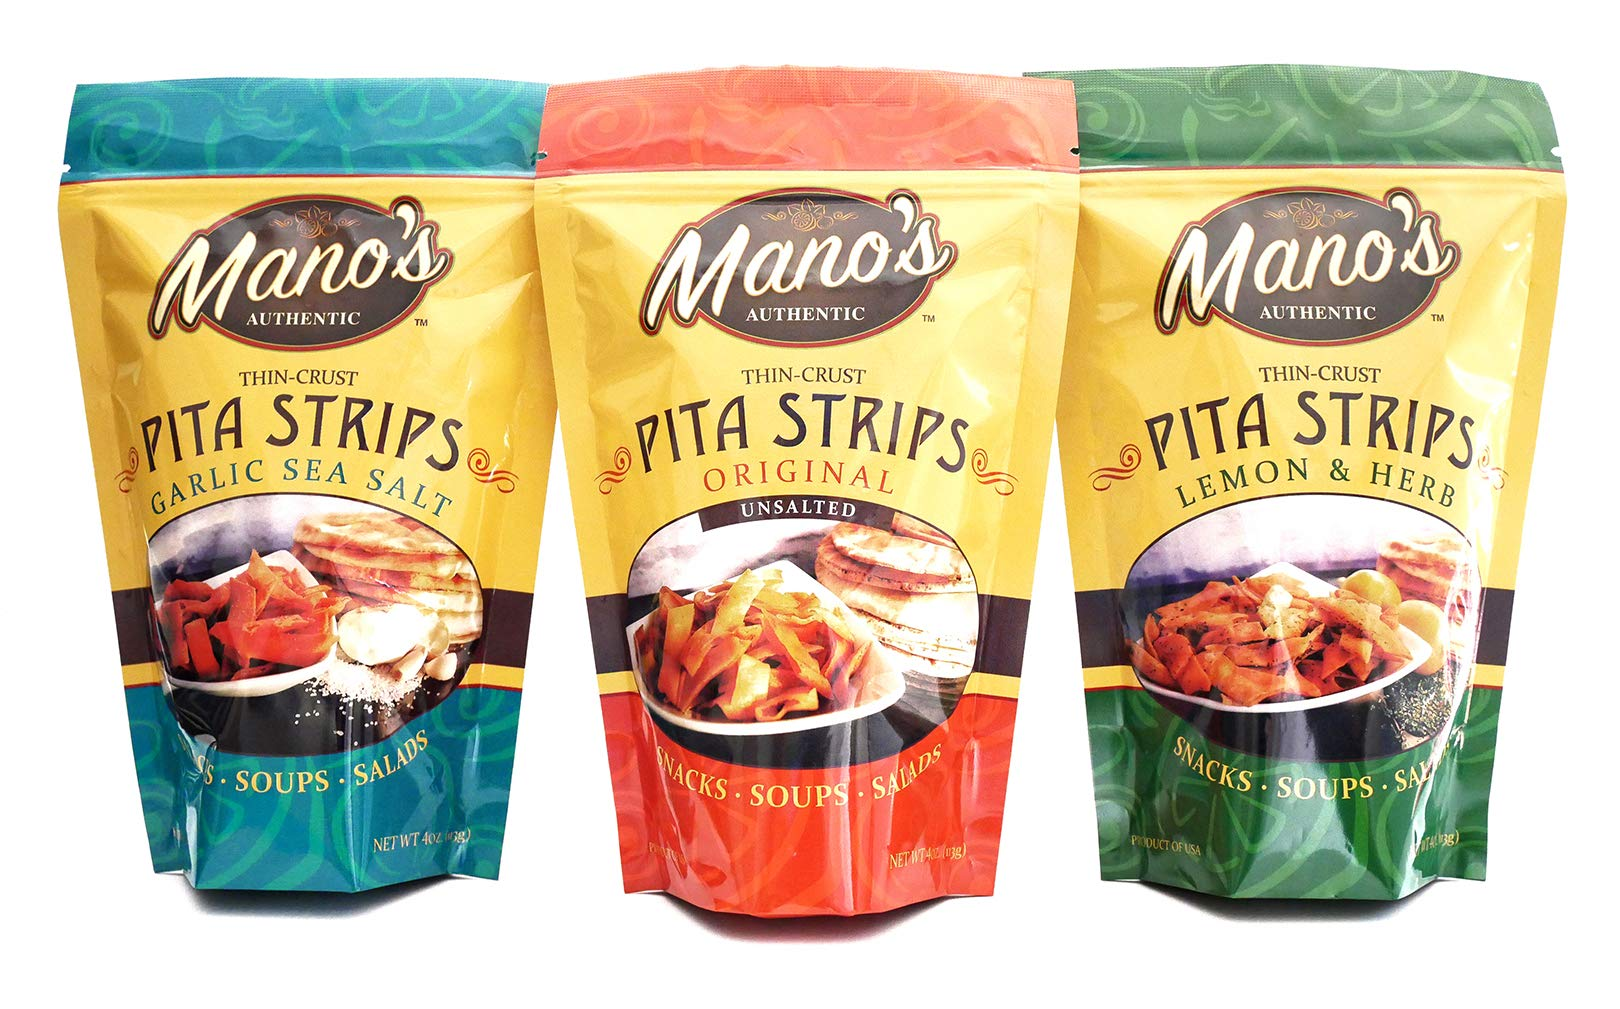 Mano's Authentic Pita Chip Strips Variety Pack - Healthy, Thin, Bite Sized Pita Chips - 12 Pack - Original, Garlic Sea Salt, Lemon & Herb (4 Bags Each) by Mano's Authentic